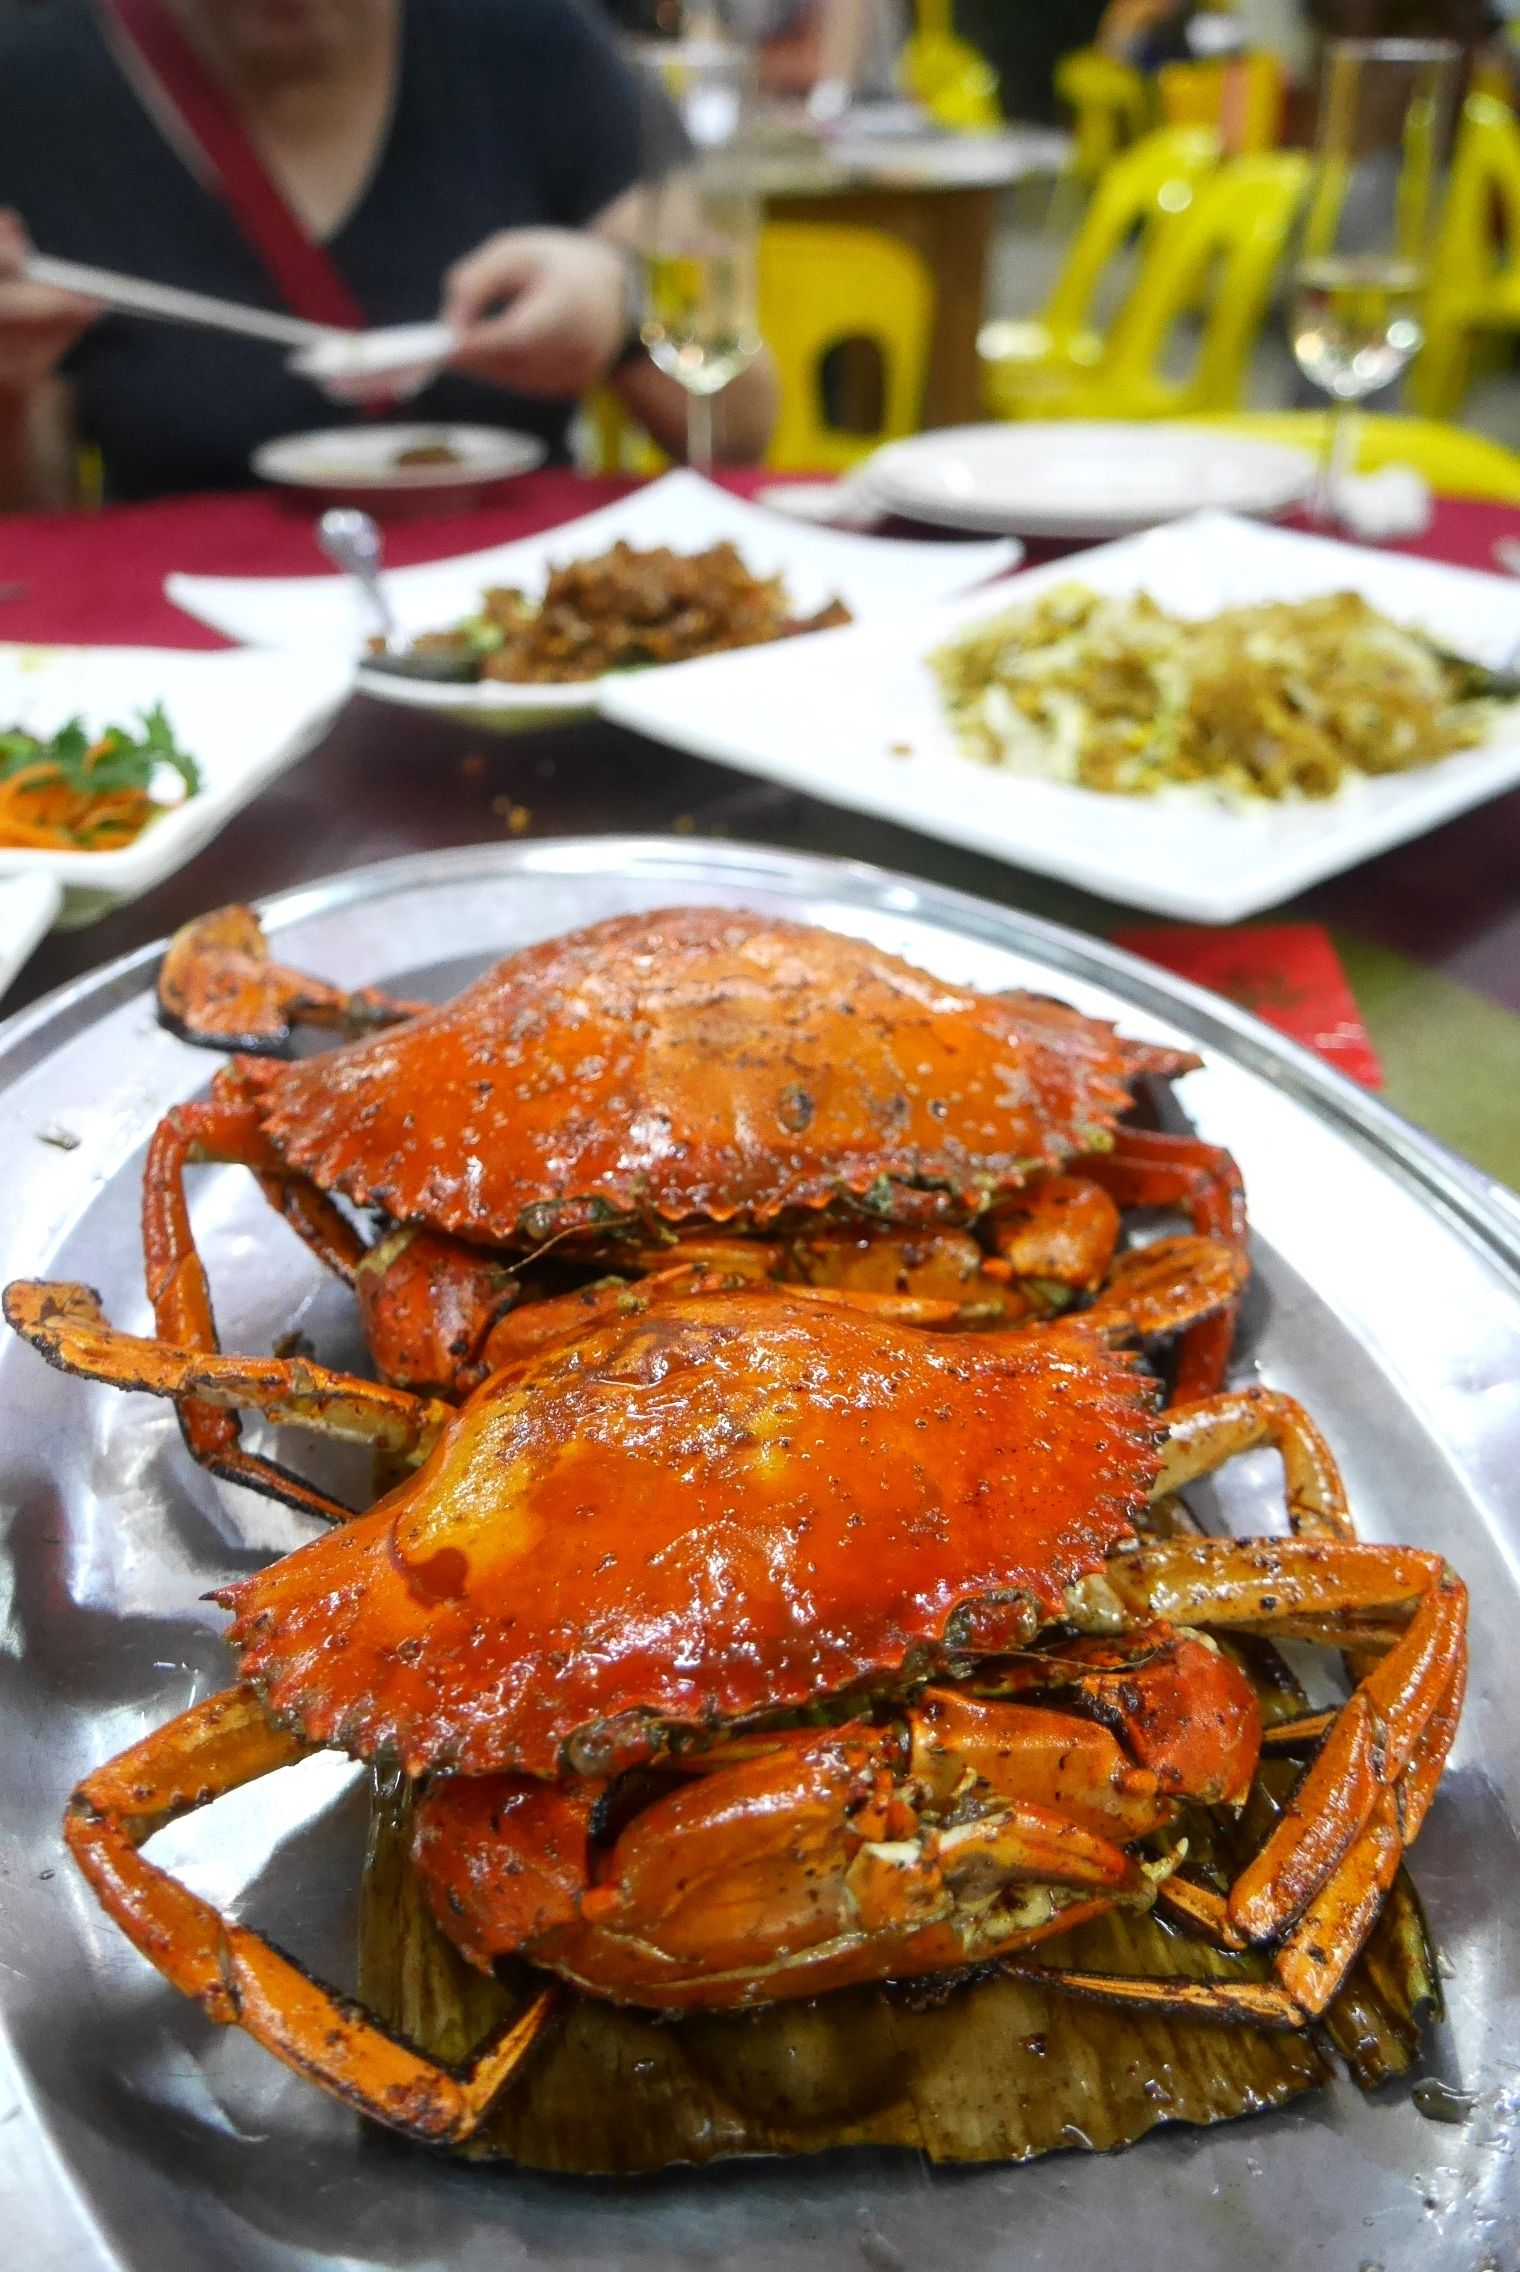 Grilled salt and pepper crab